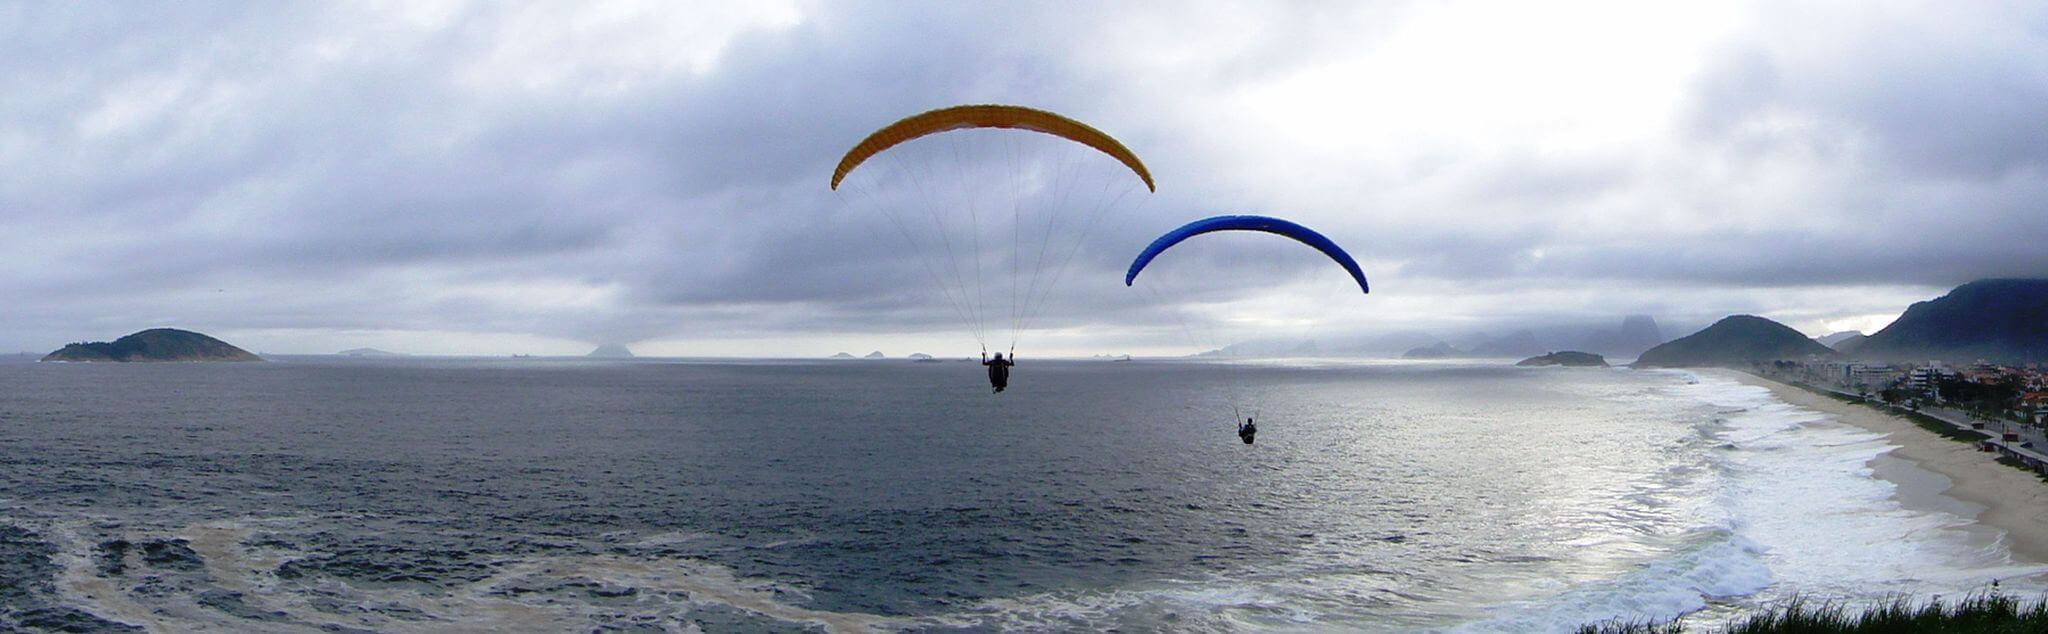 Paragliding in El Altet